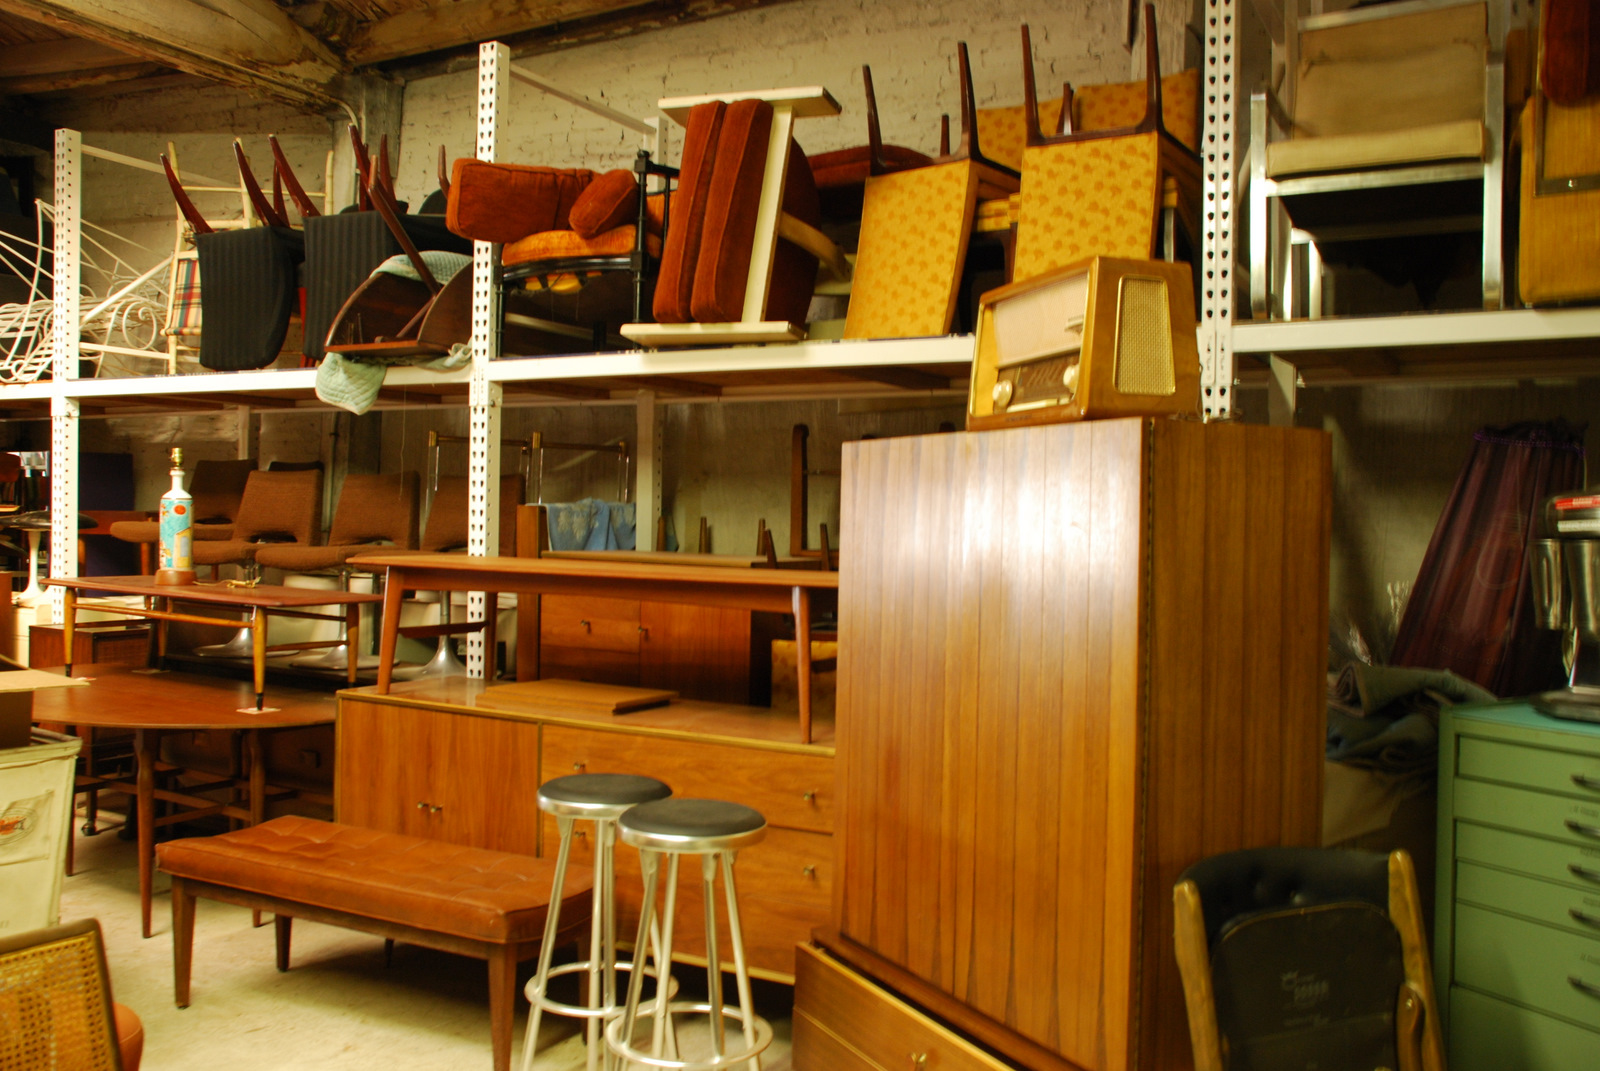 Find Out High Quality Used Furniture NYC In These 9 Online